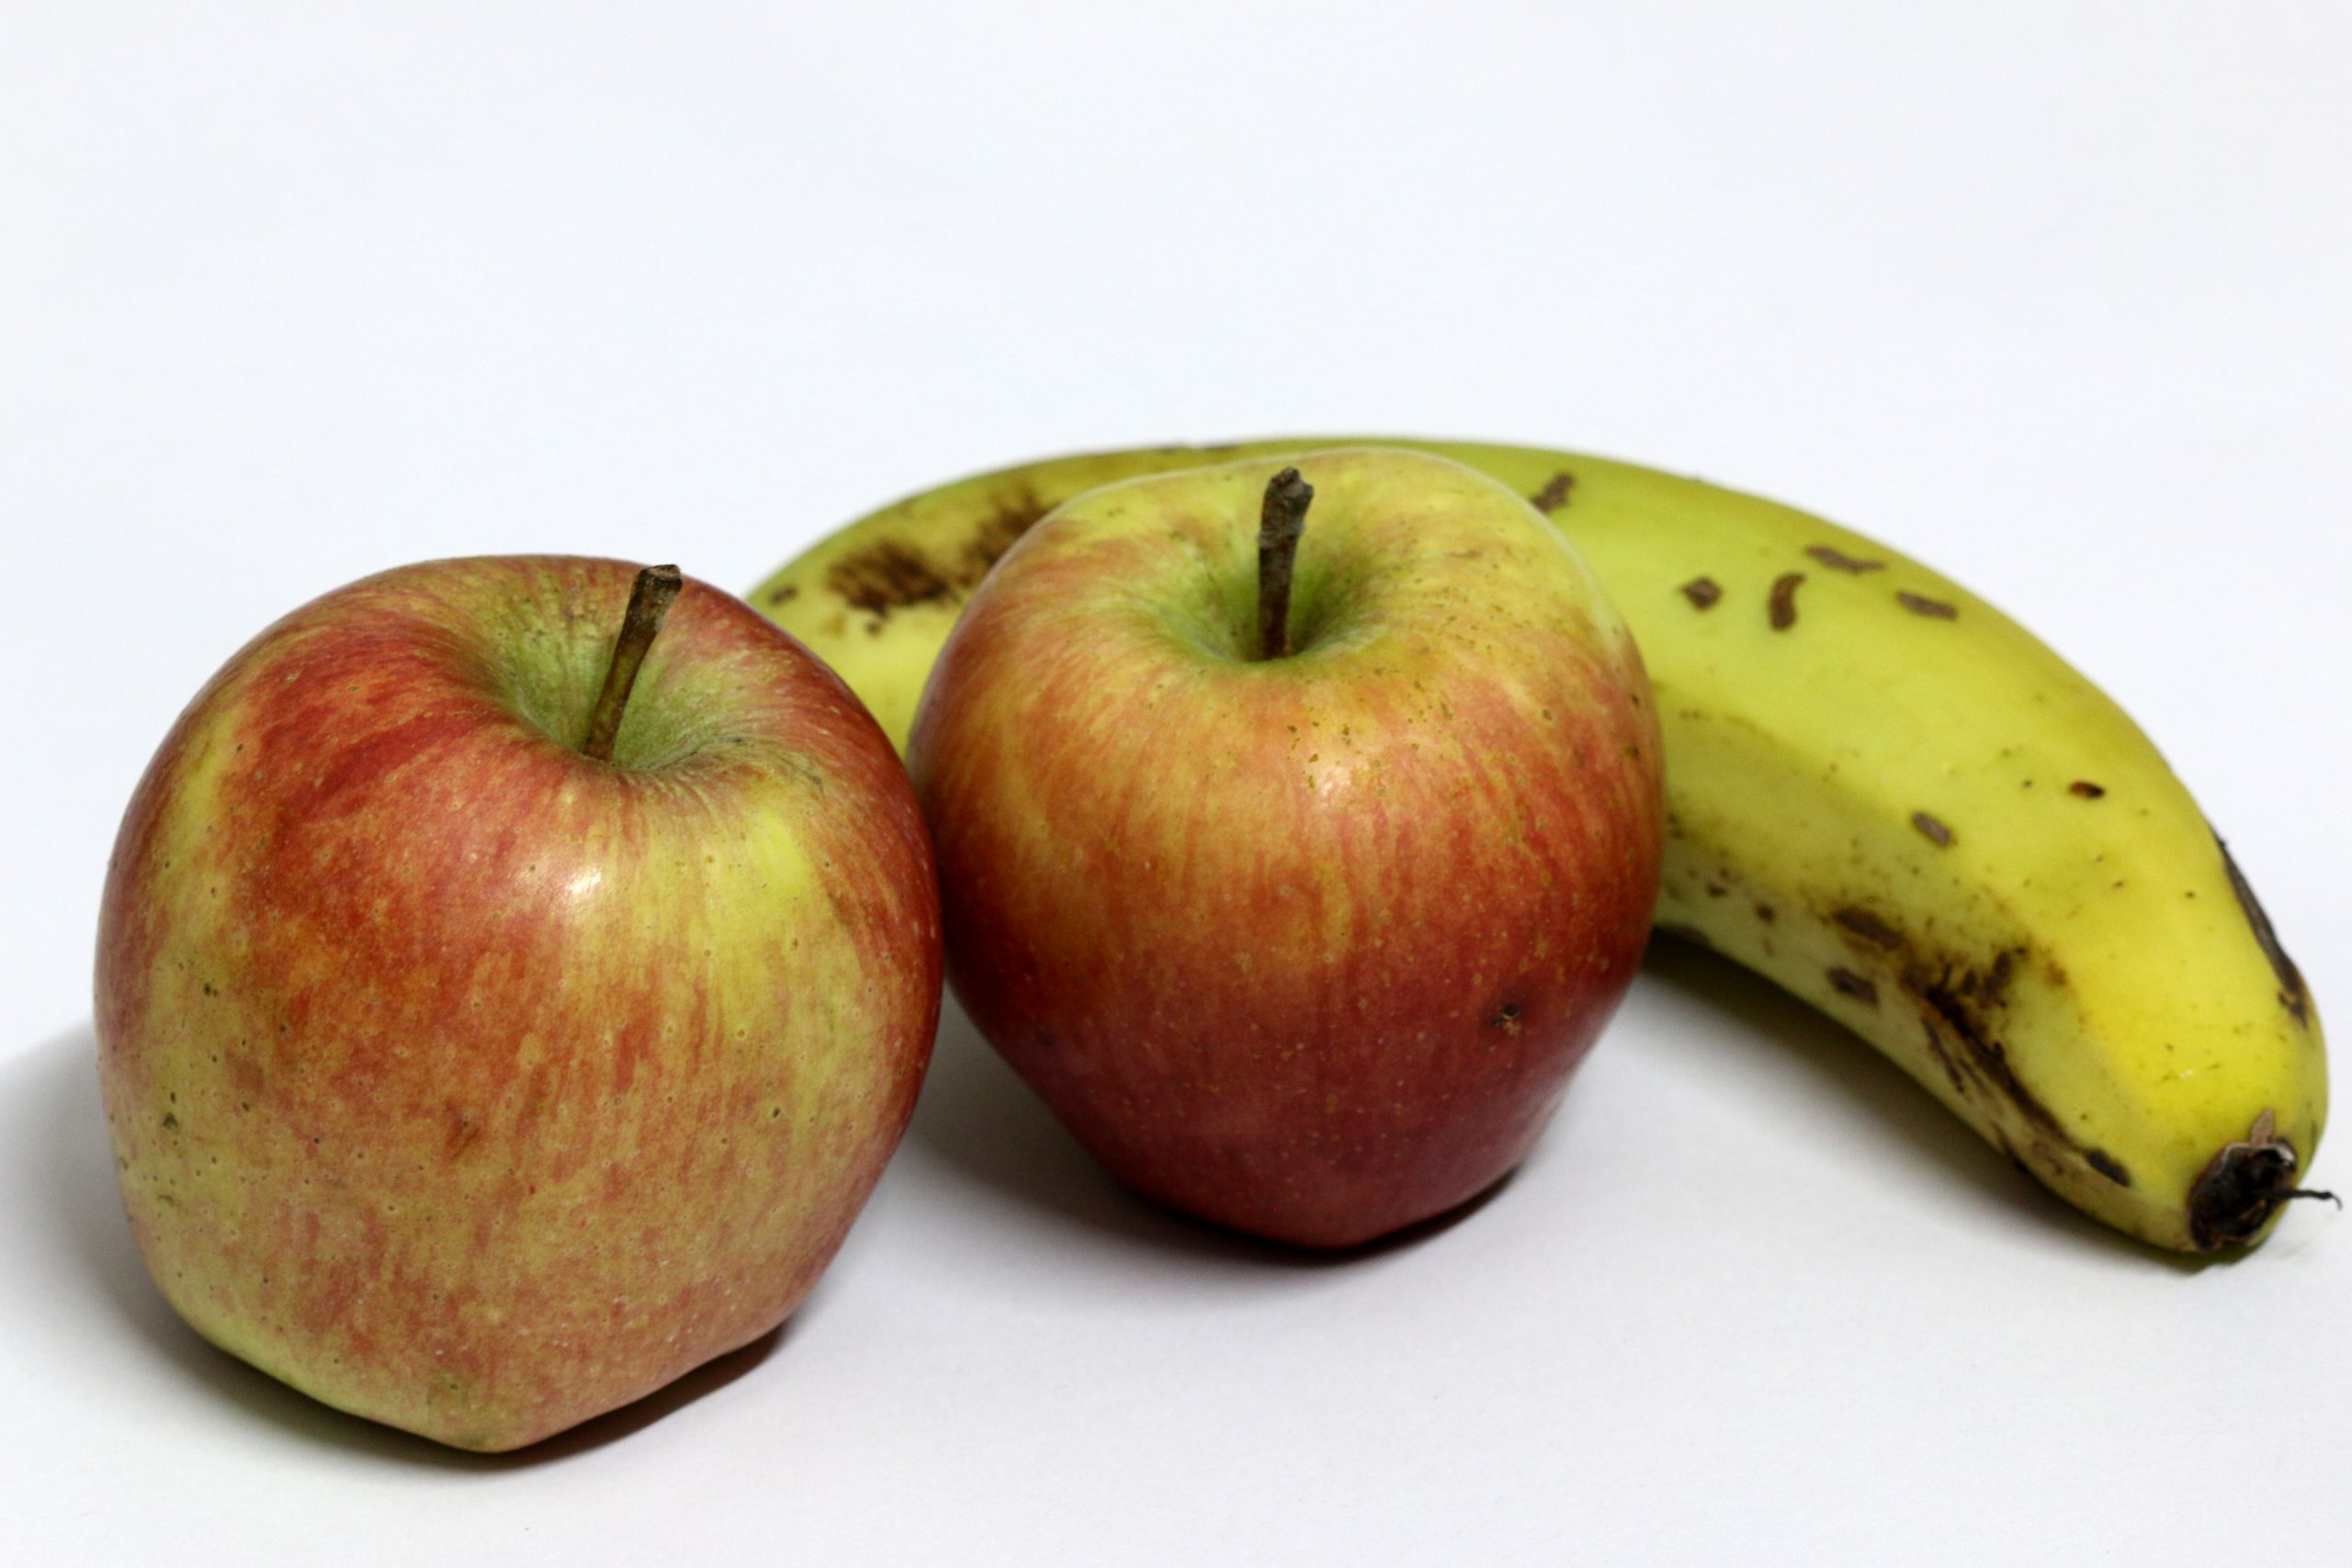 Apple and Banana in White Background